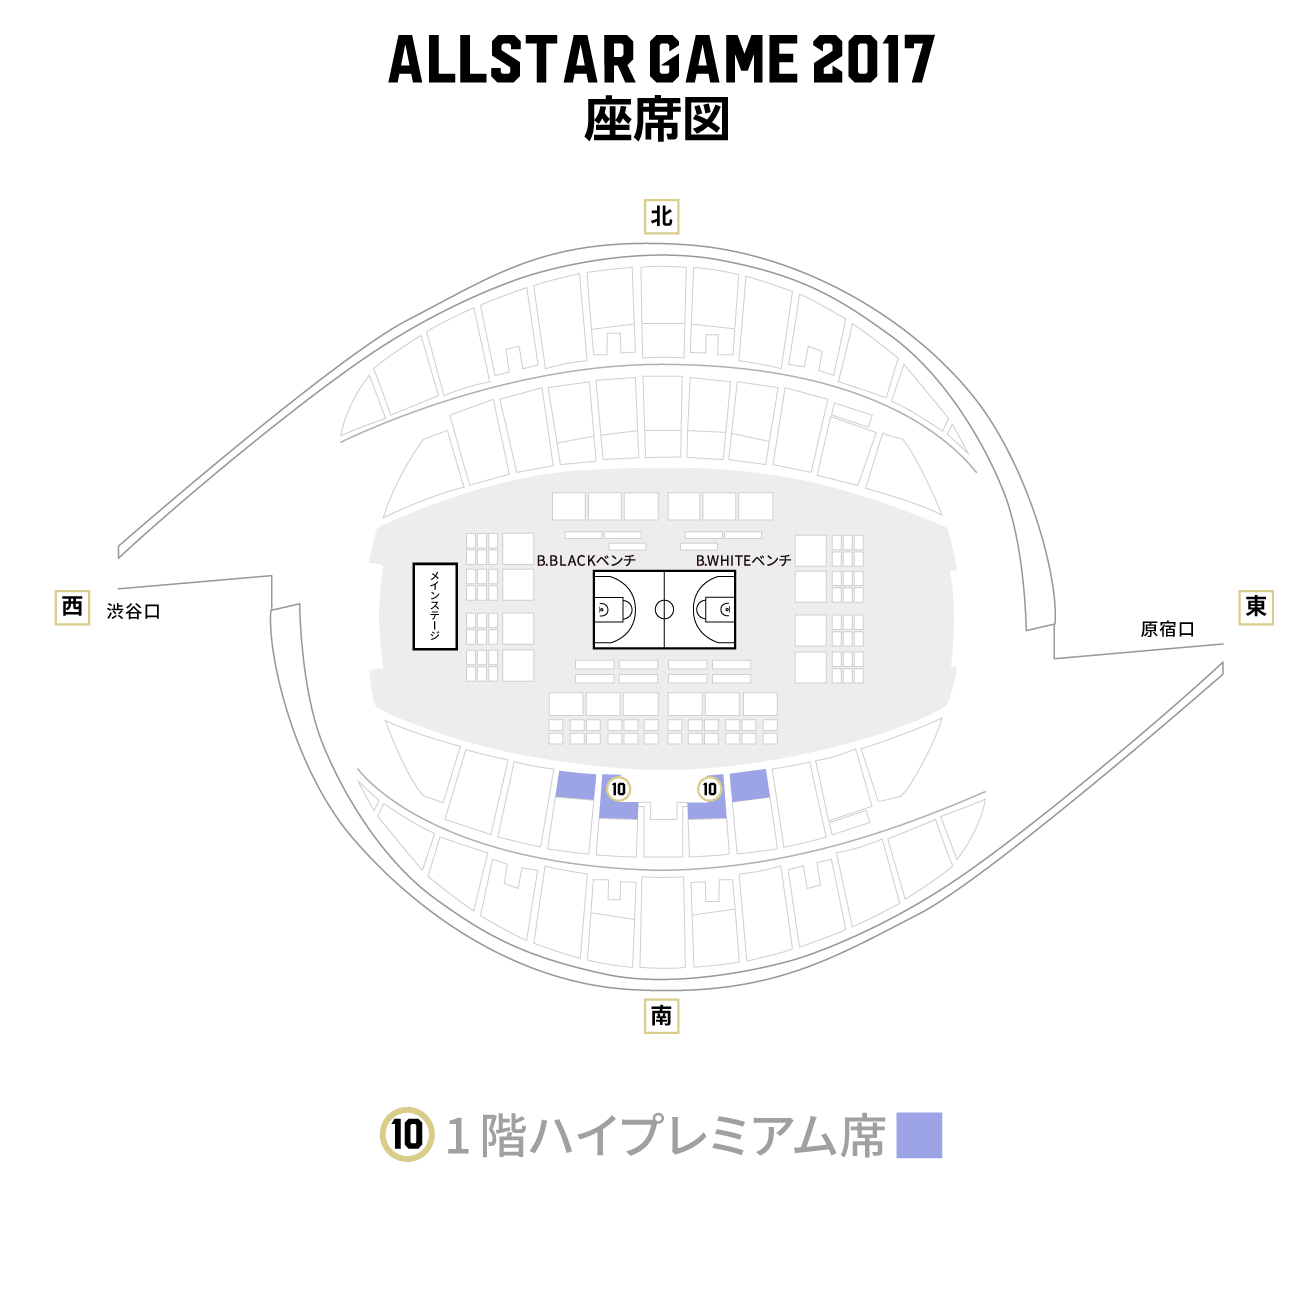 seatview_seat_10.png